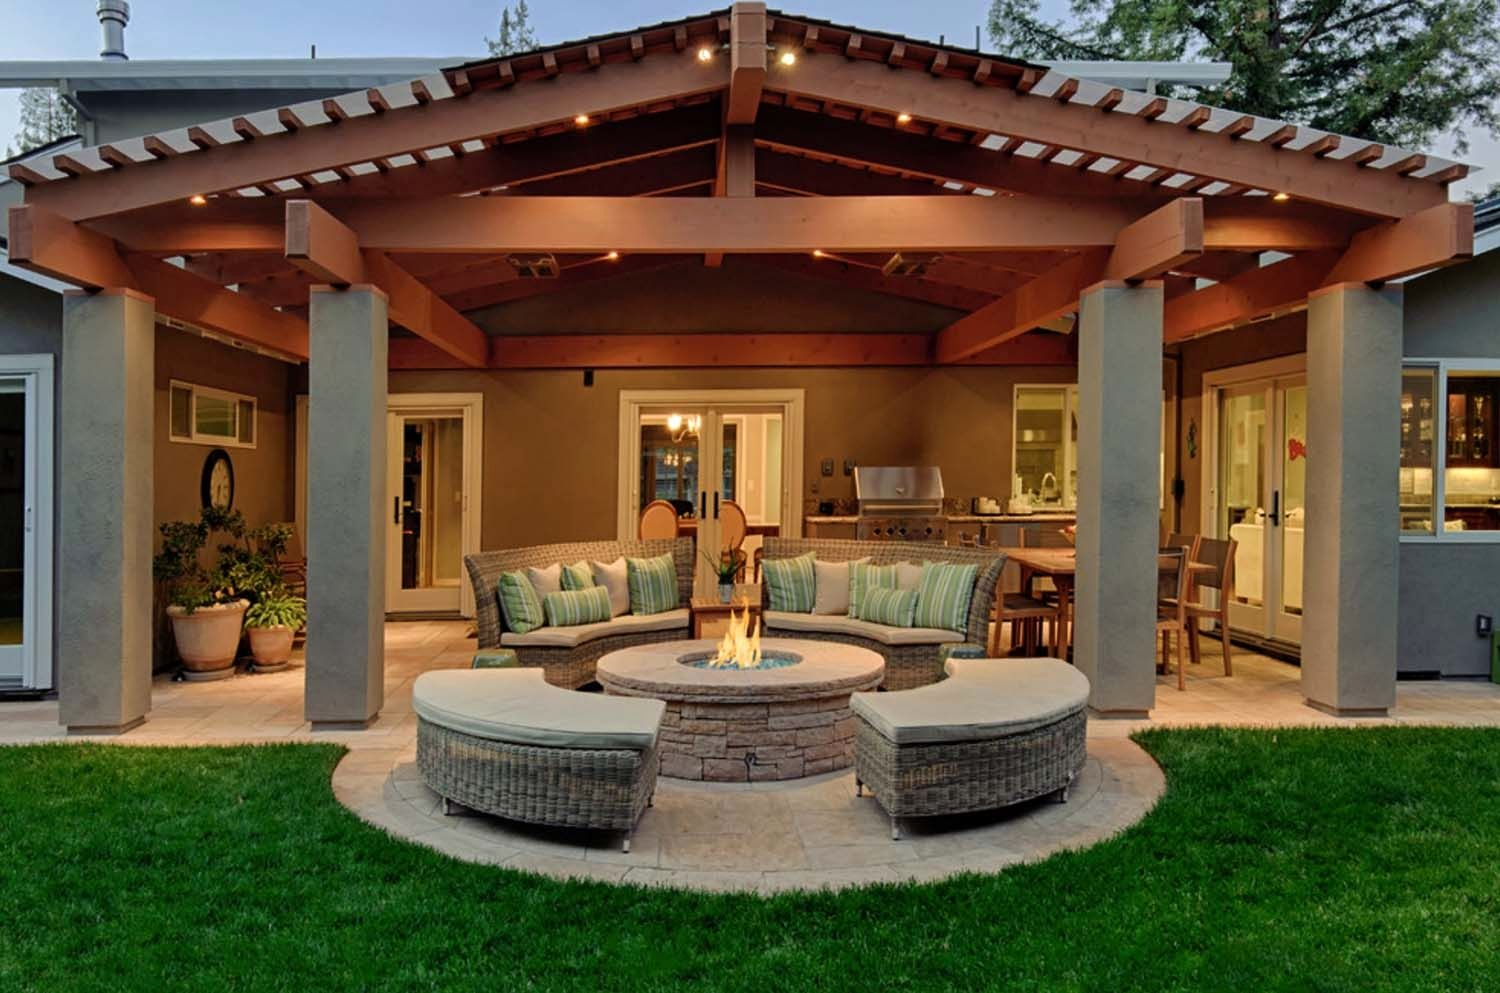 Outdoor Entertainment Area Design Ideas Home Bbq Designs In 2020 Outdoor Patio Designs Covered Patio Design Backyard Covered Patios